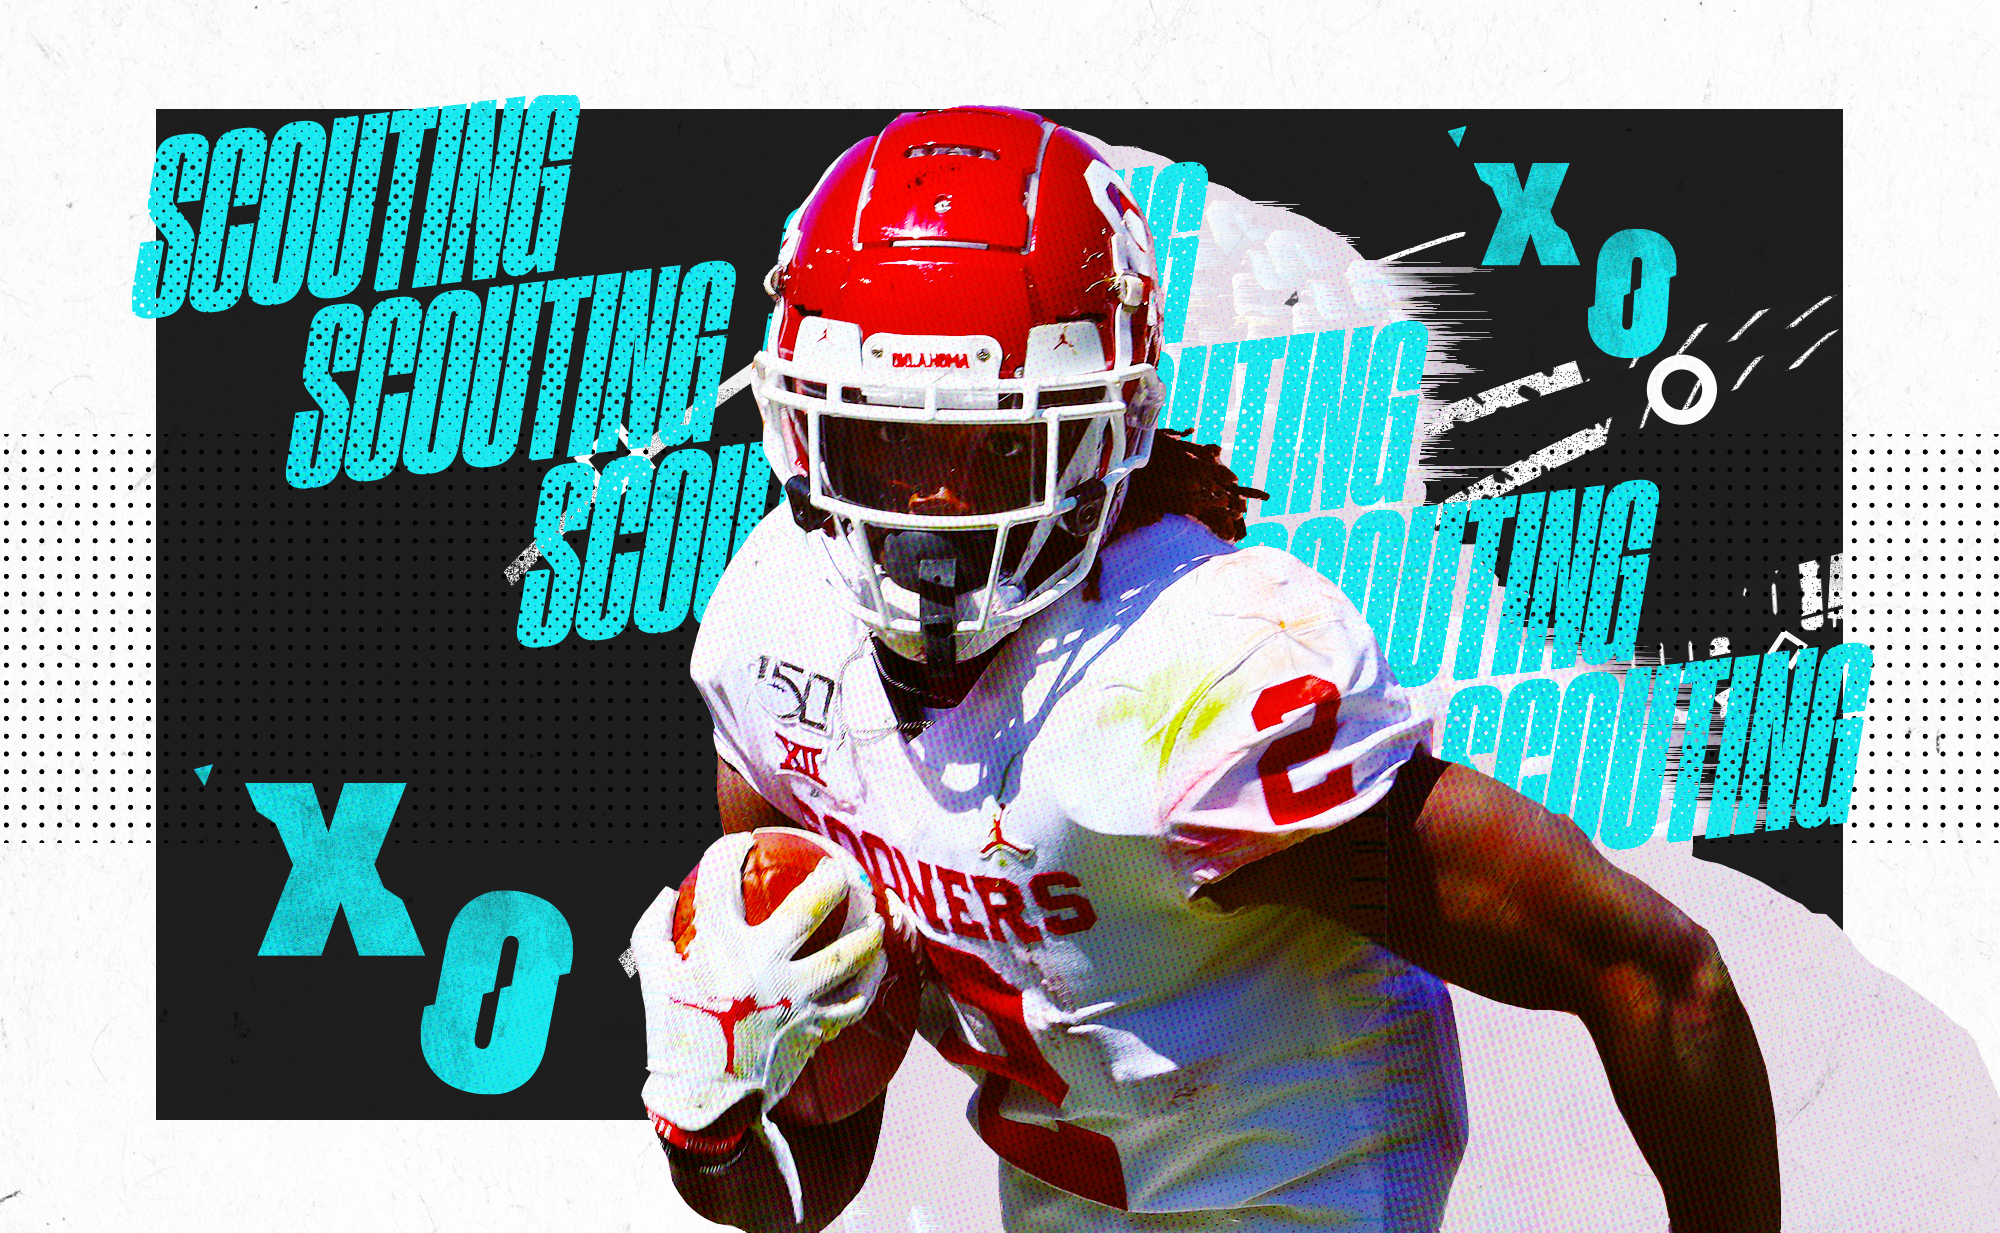 """An illustration of NFL WR prospect CeeDee Lamb running with the ball at Oklahoma, superimposed on a black and white background with """"SCOUTING"""" and """"X""""s and """"O""""s in aqua lettering"""